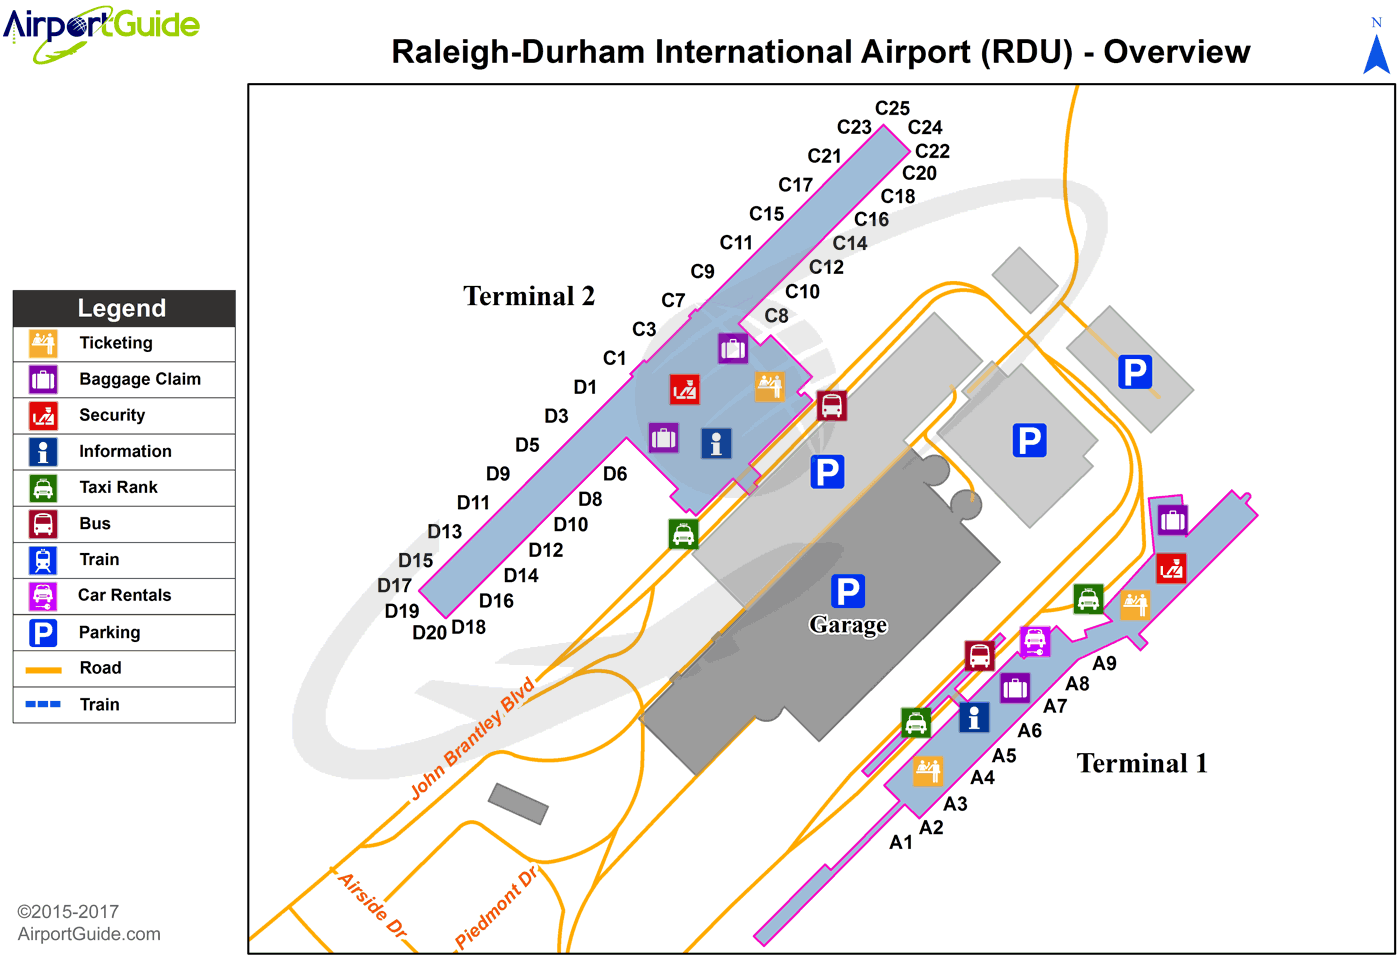 Raleigh/Durham - Raleigh-Durham International (RDU) Airport Terminal Map - Overview